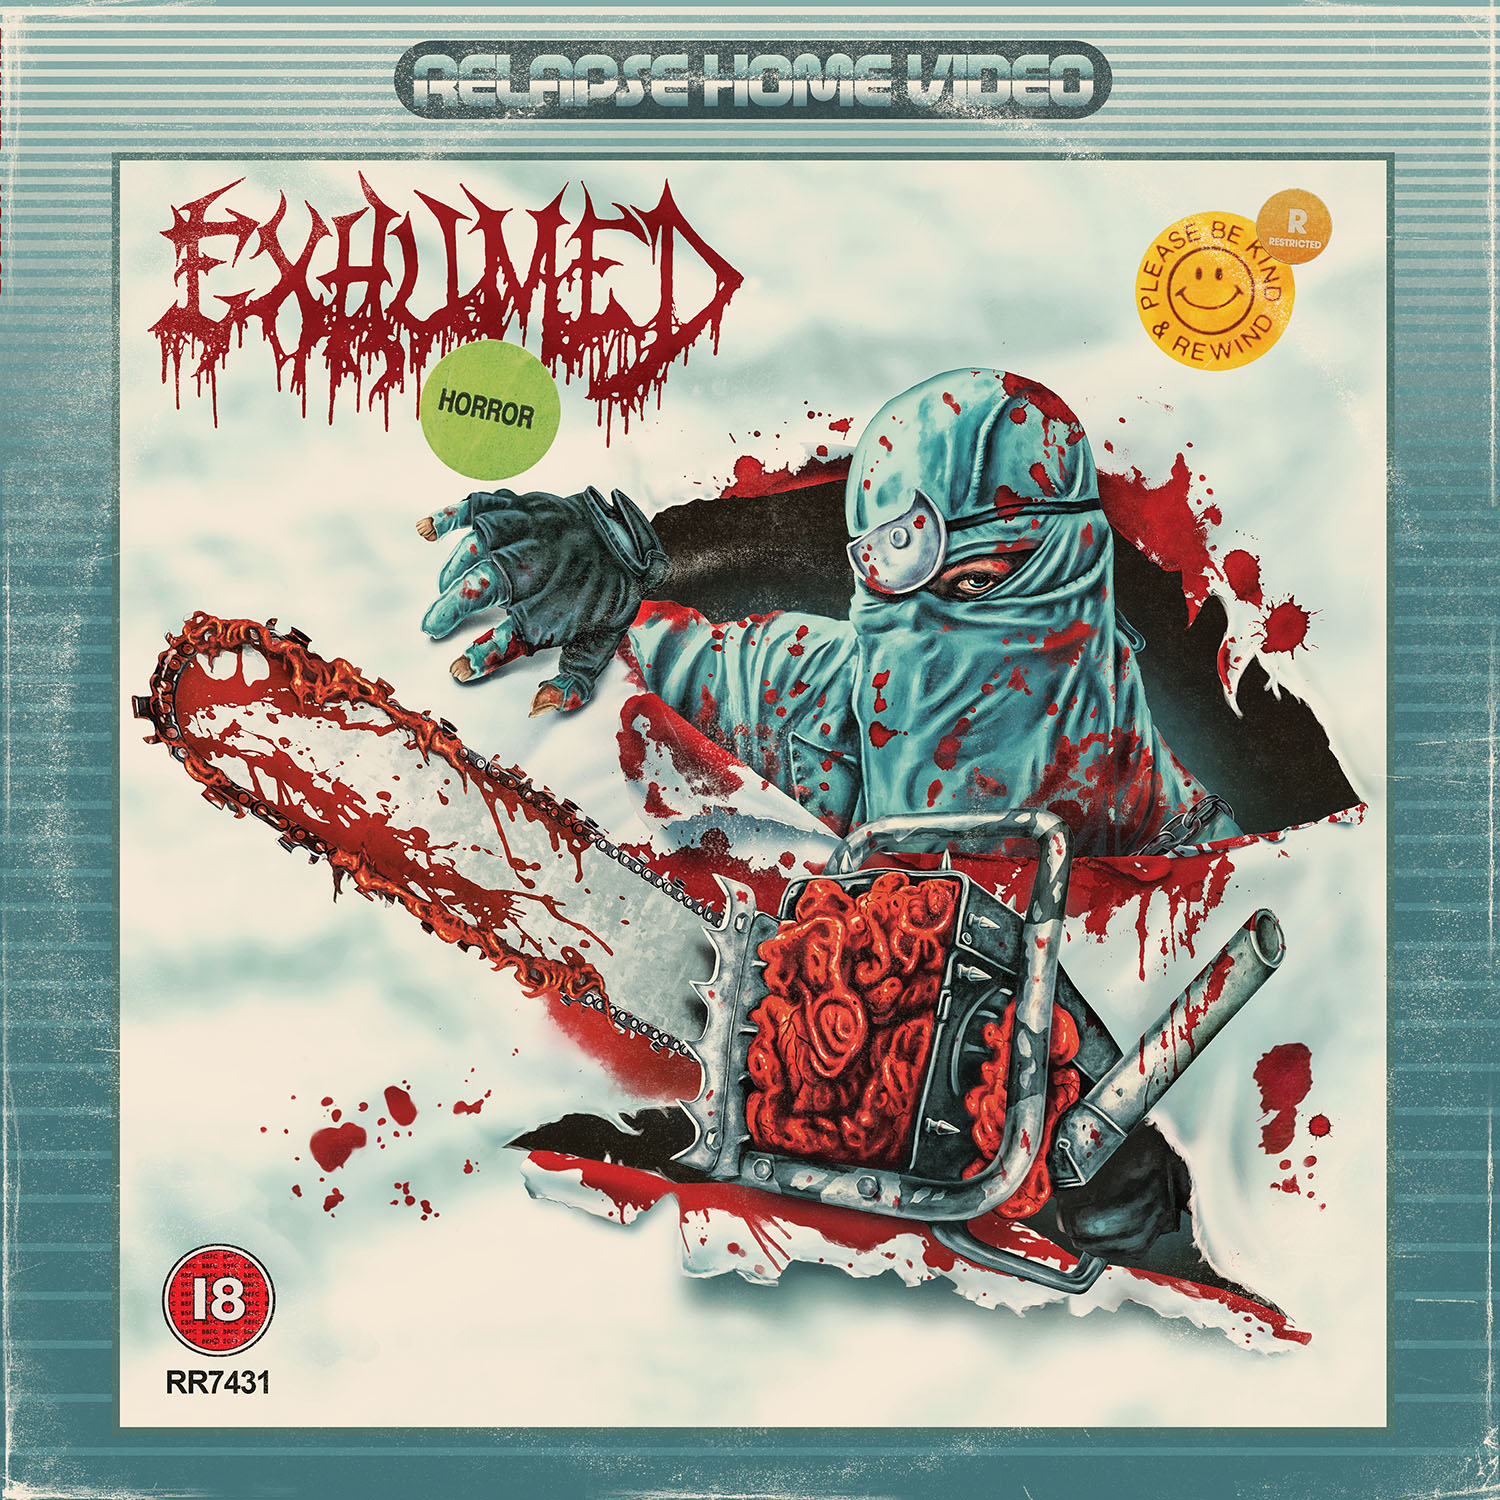 Horror T Shirt + CD Bundle